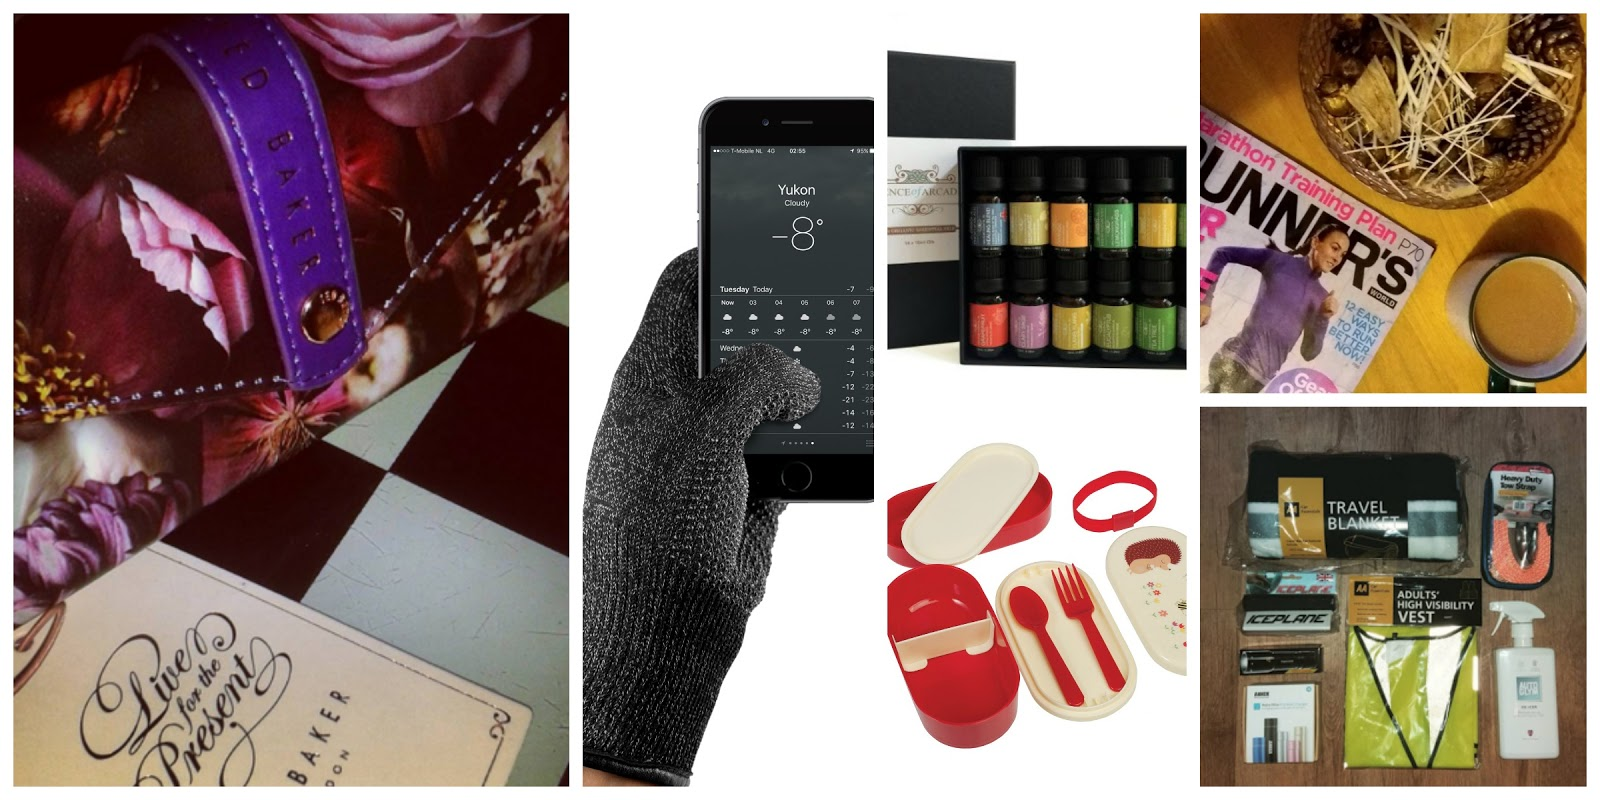 christmas, gift guide, unusual gifts, ted baker, touchscreen gloves, aromatherapy, bento box, magazine, car care kit